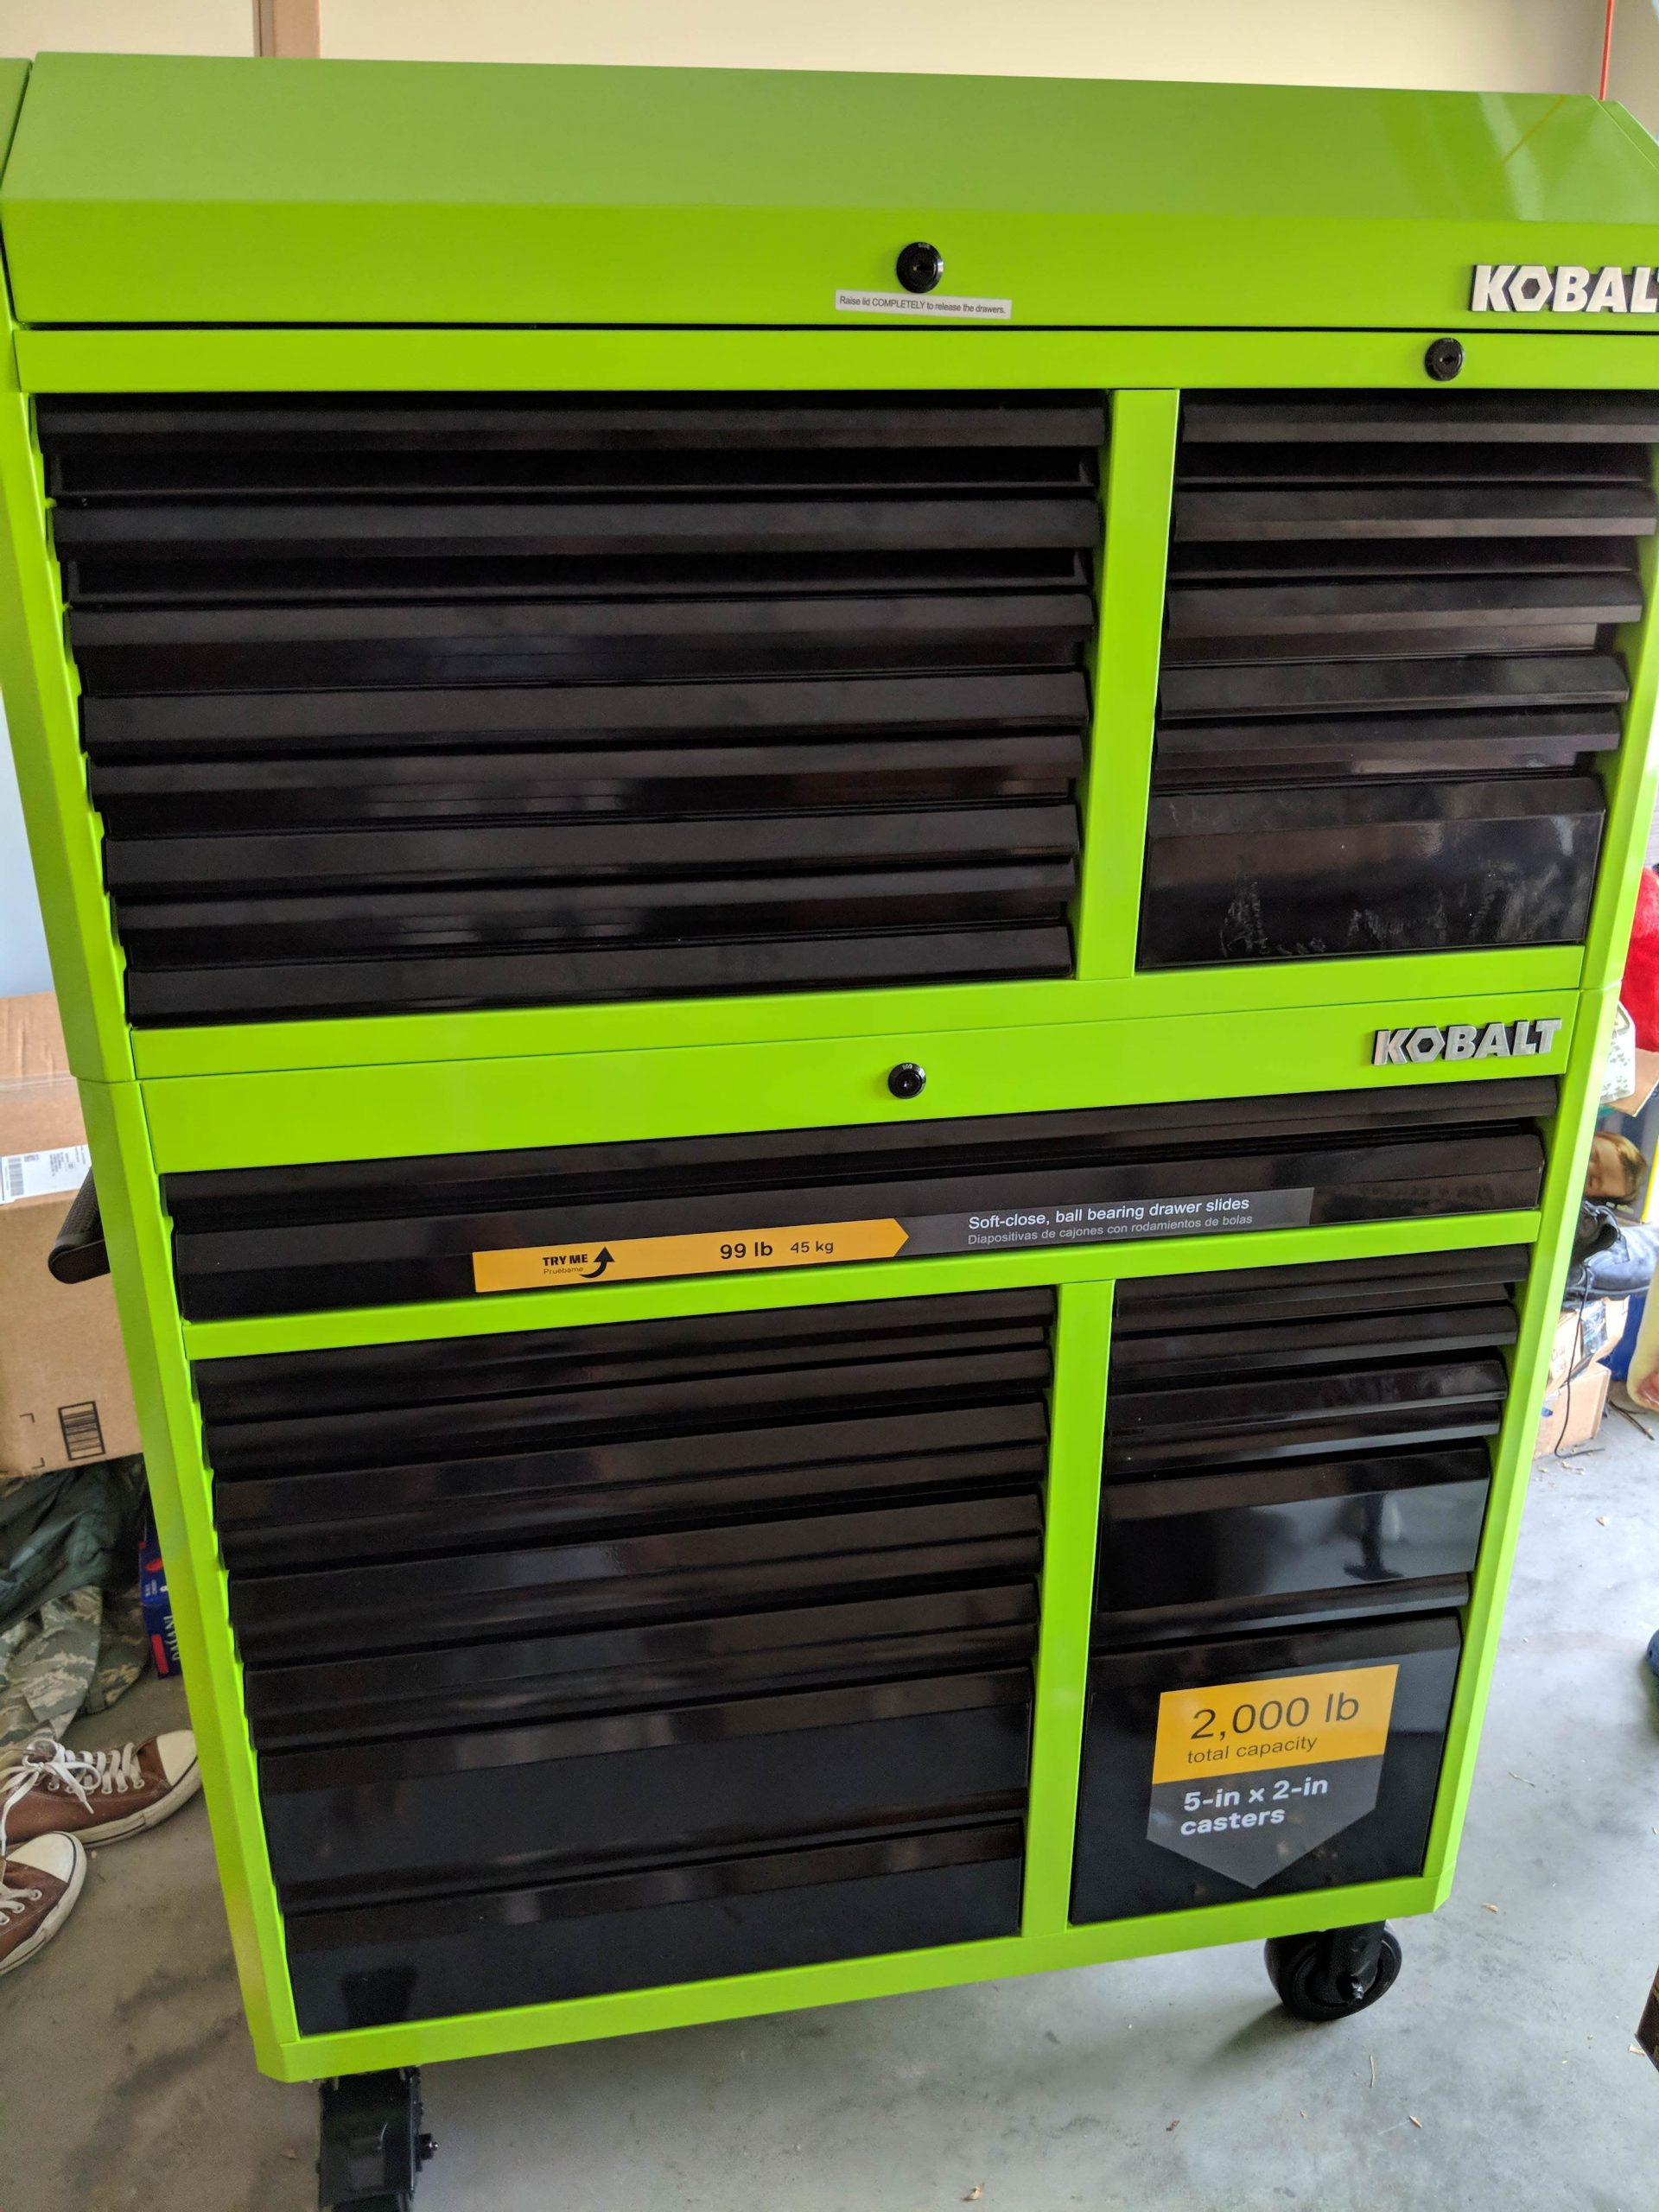 Wood Fireplace Inserts Lowes Best Of It is Finally Here My $400 tool Box From Lowe S tools